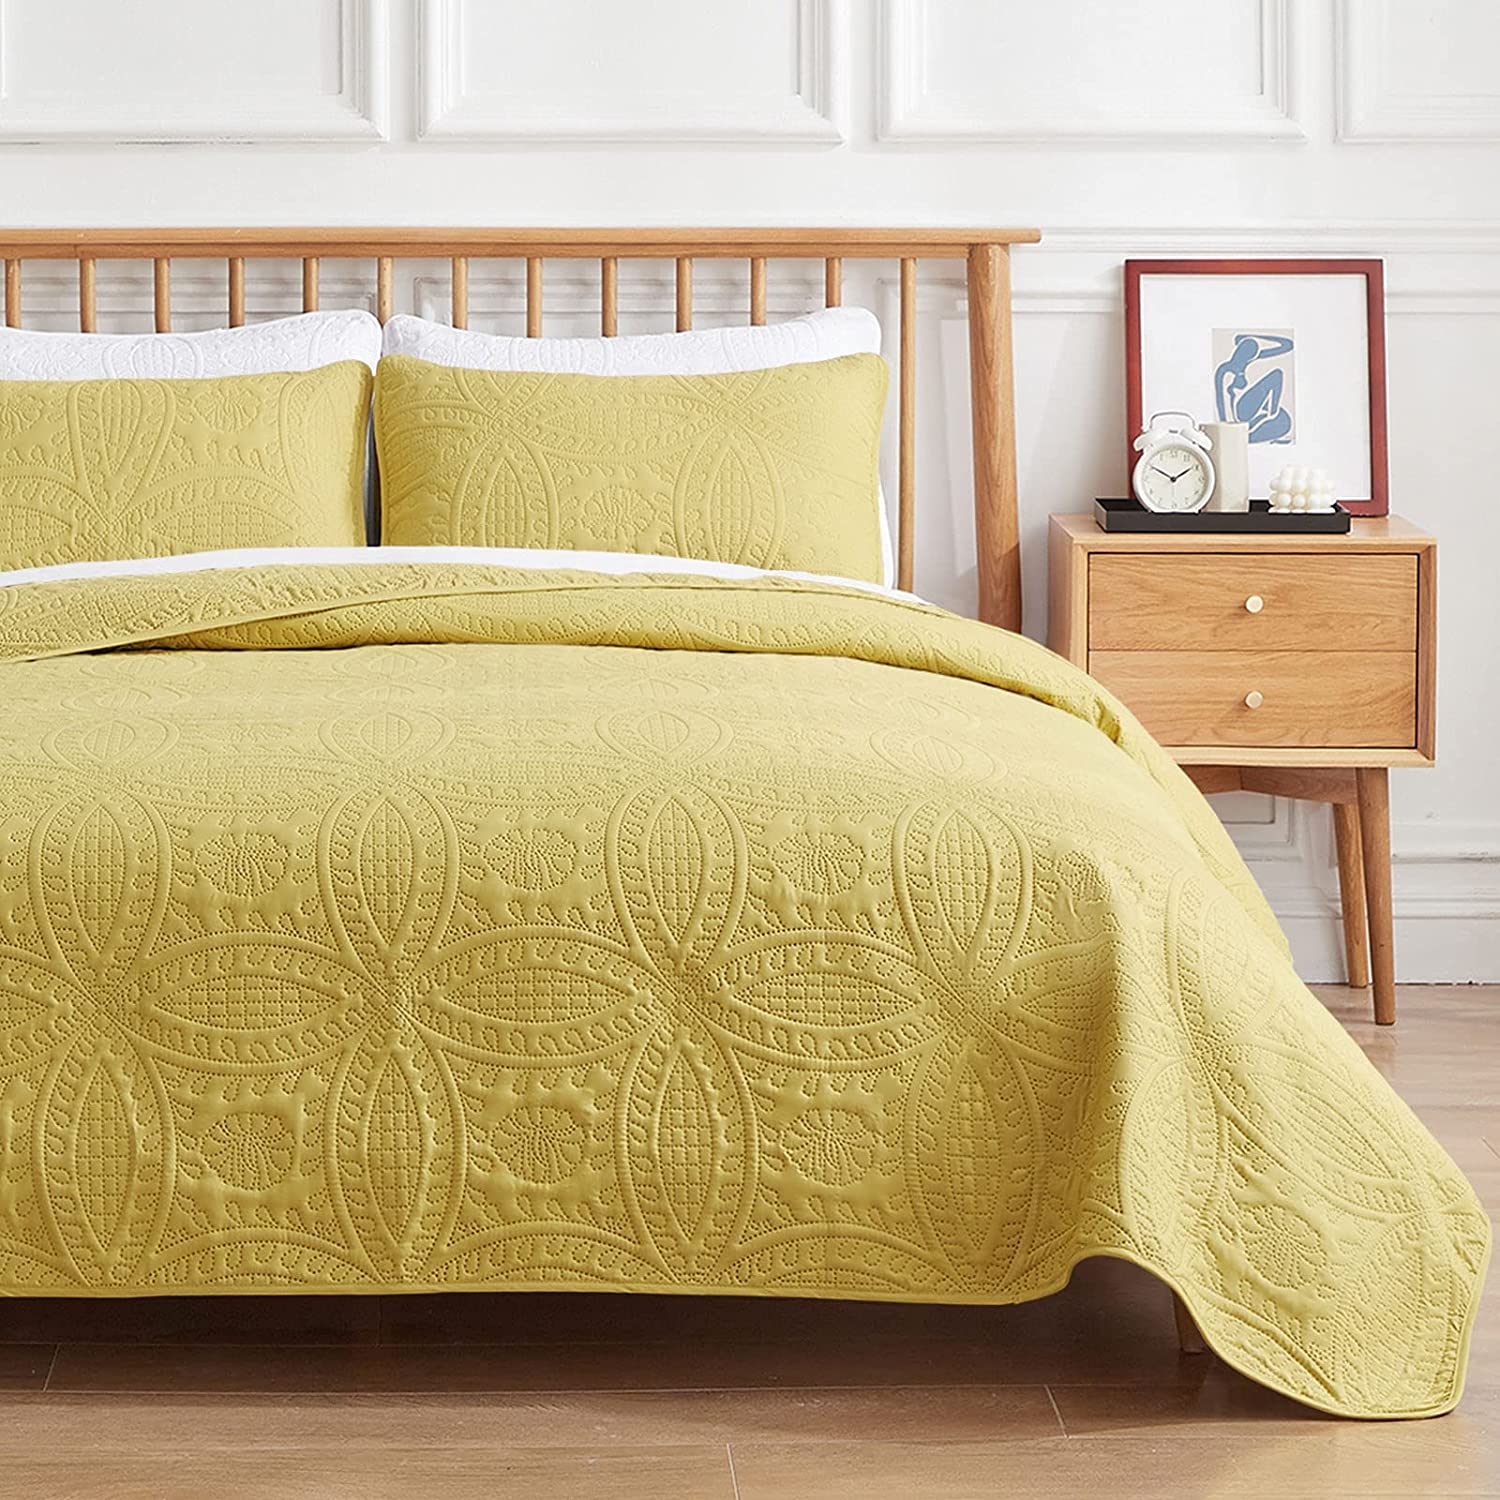 VEEYOO 2 Pieces price Bedspread Twin Ultrasonic Light - Quantity limited Size Embossing